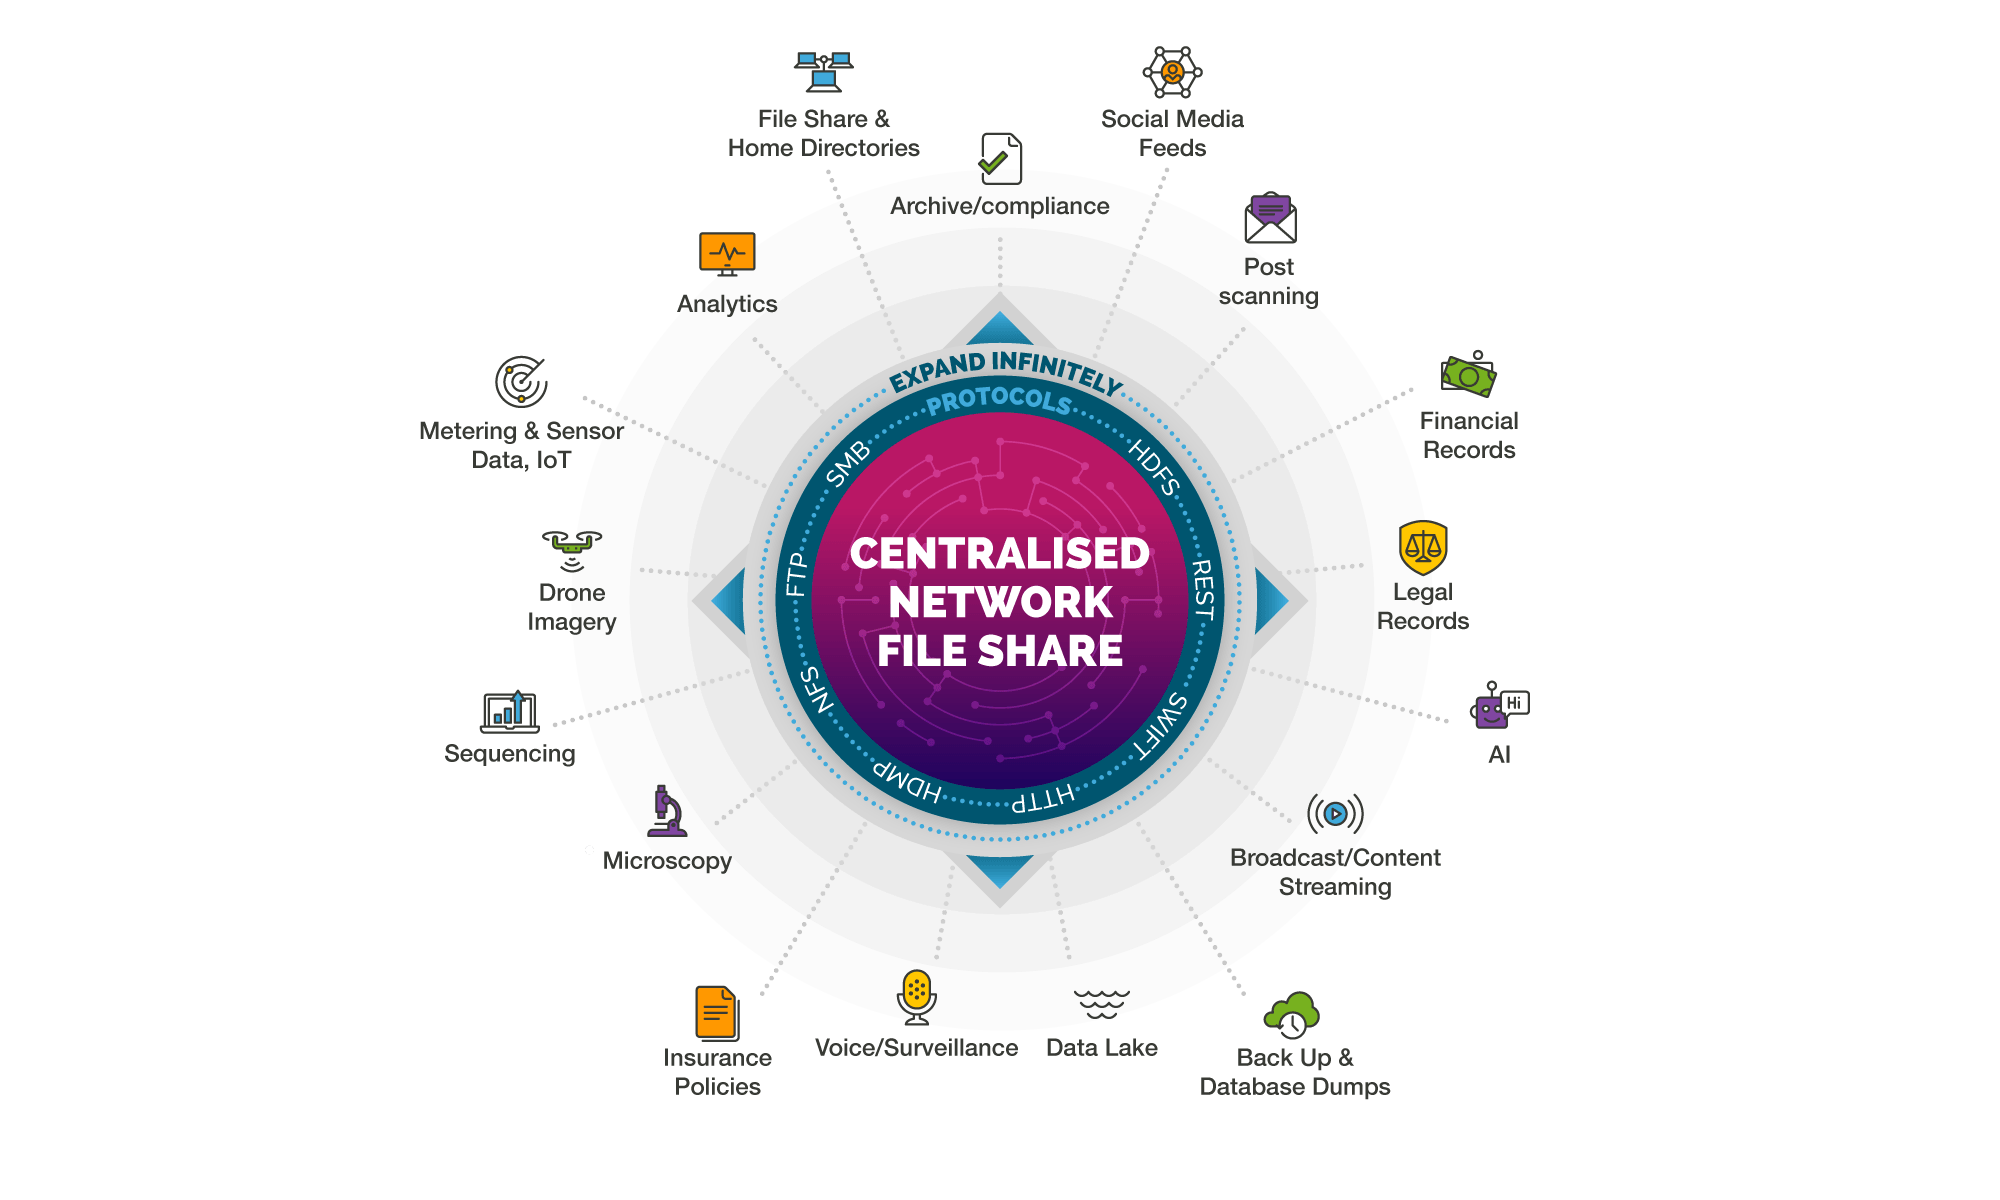 Centralised network file share